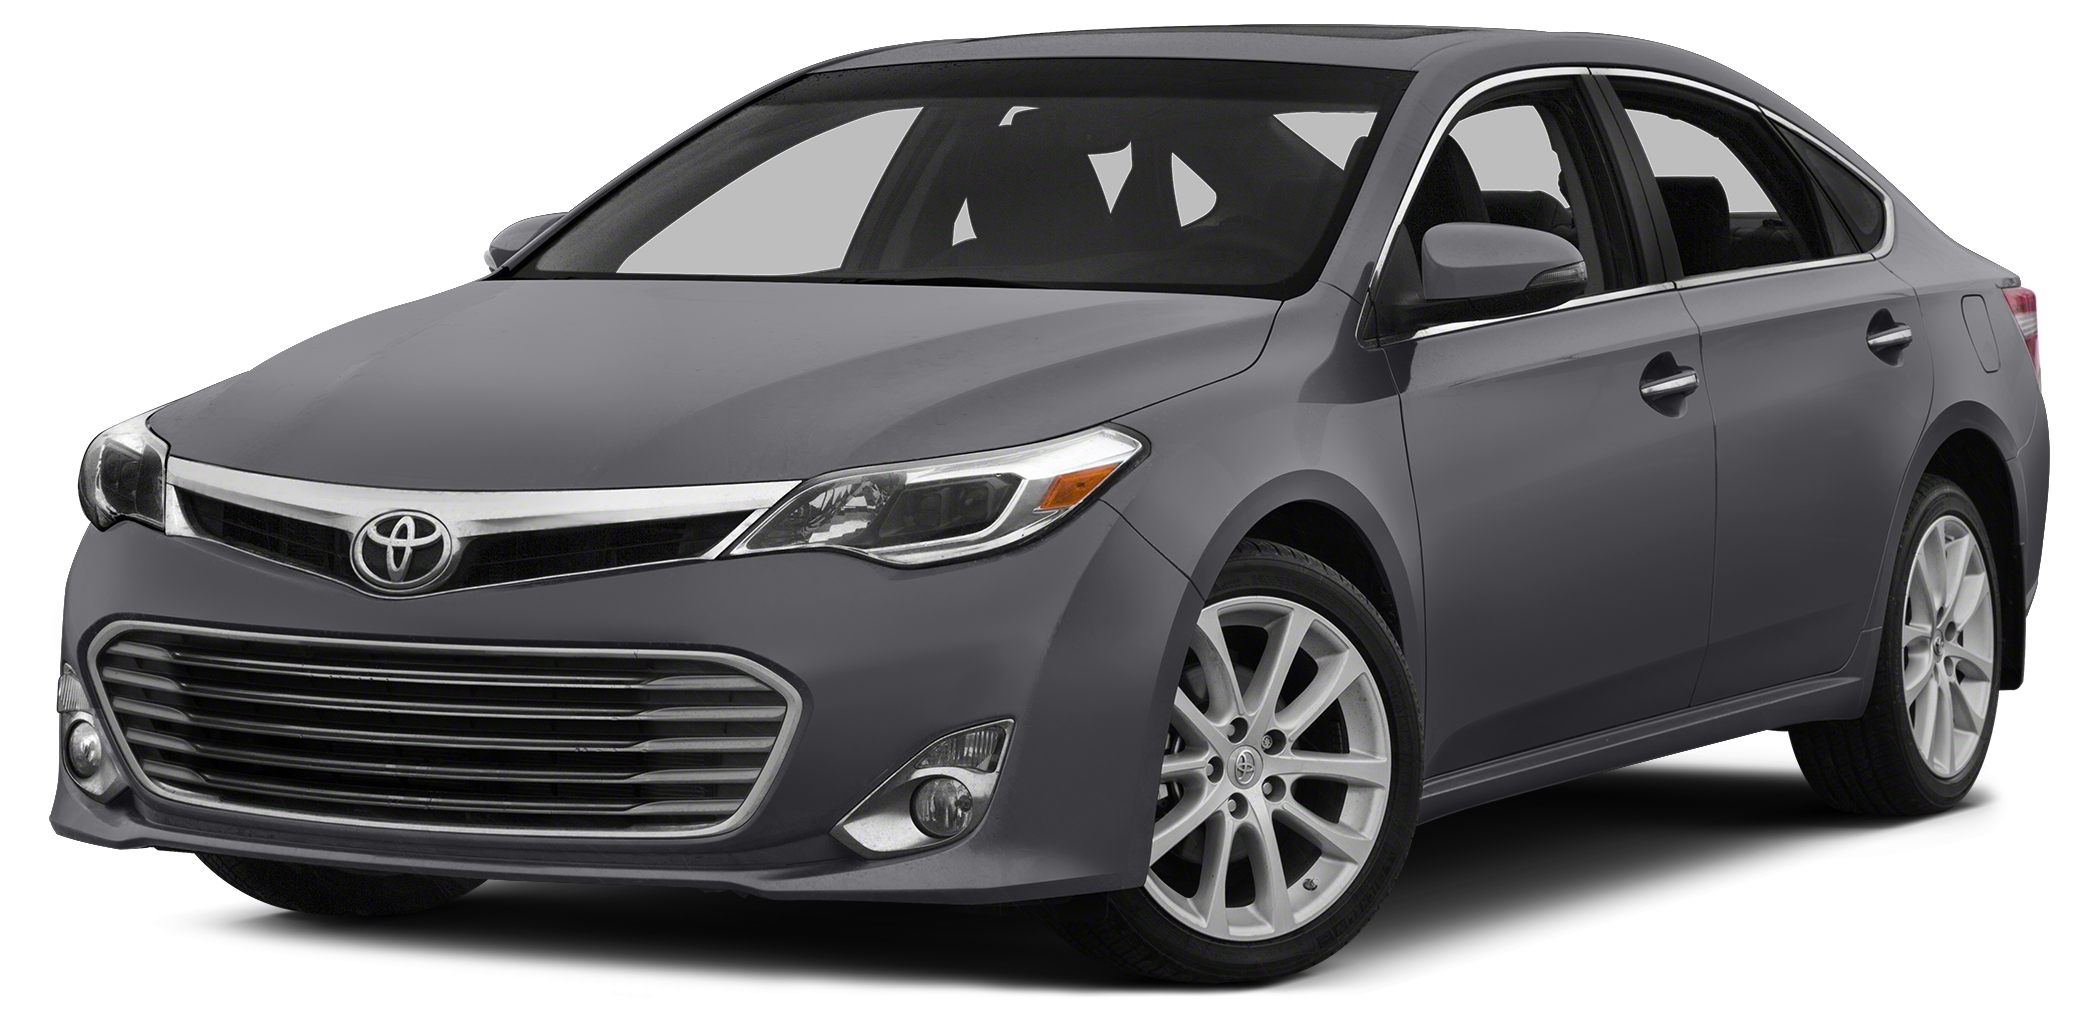 2015 Toyota Avalon XLE Touring Westboro Toyota is proud to present HASSLE FREE BUYING EXPERIENCE w